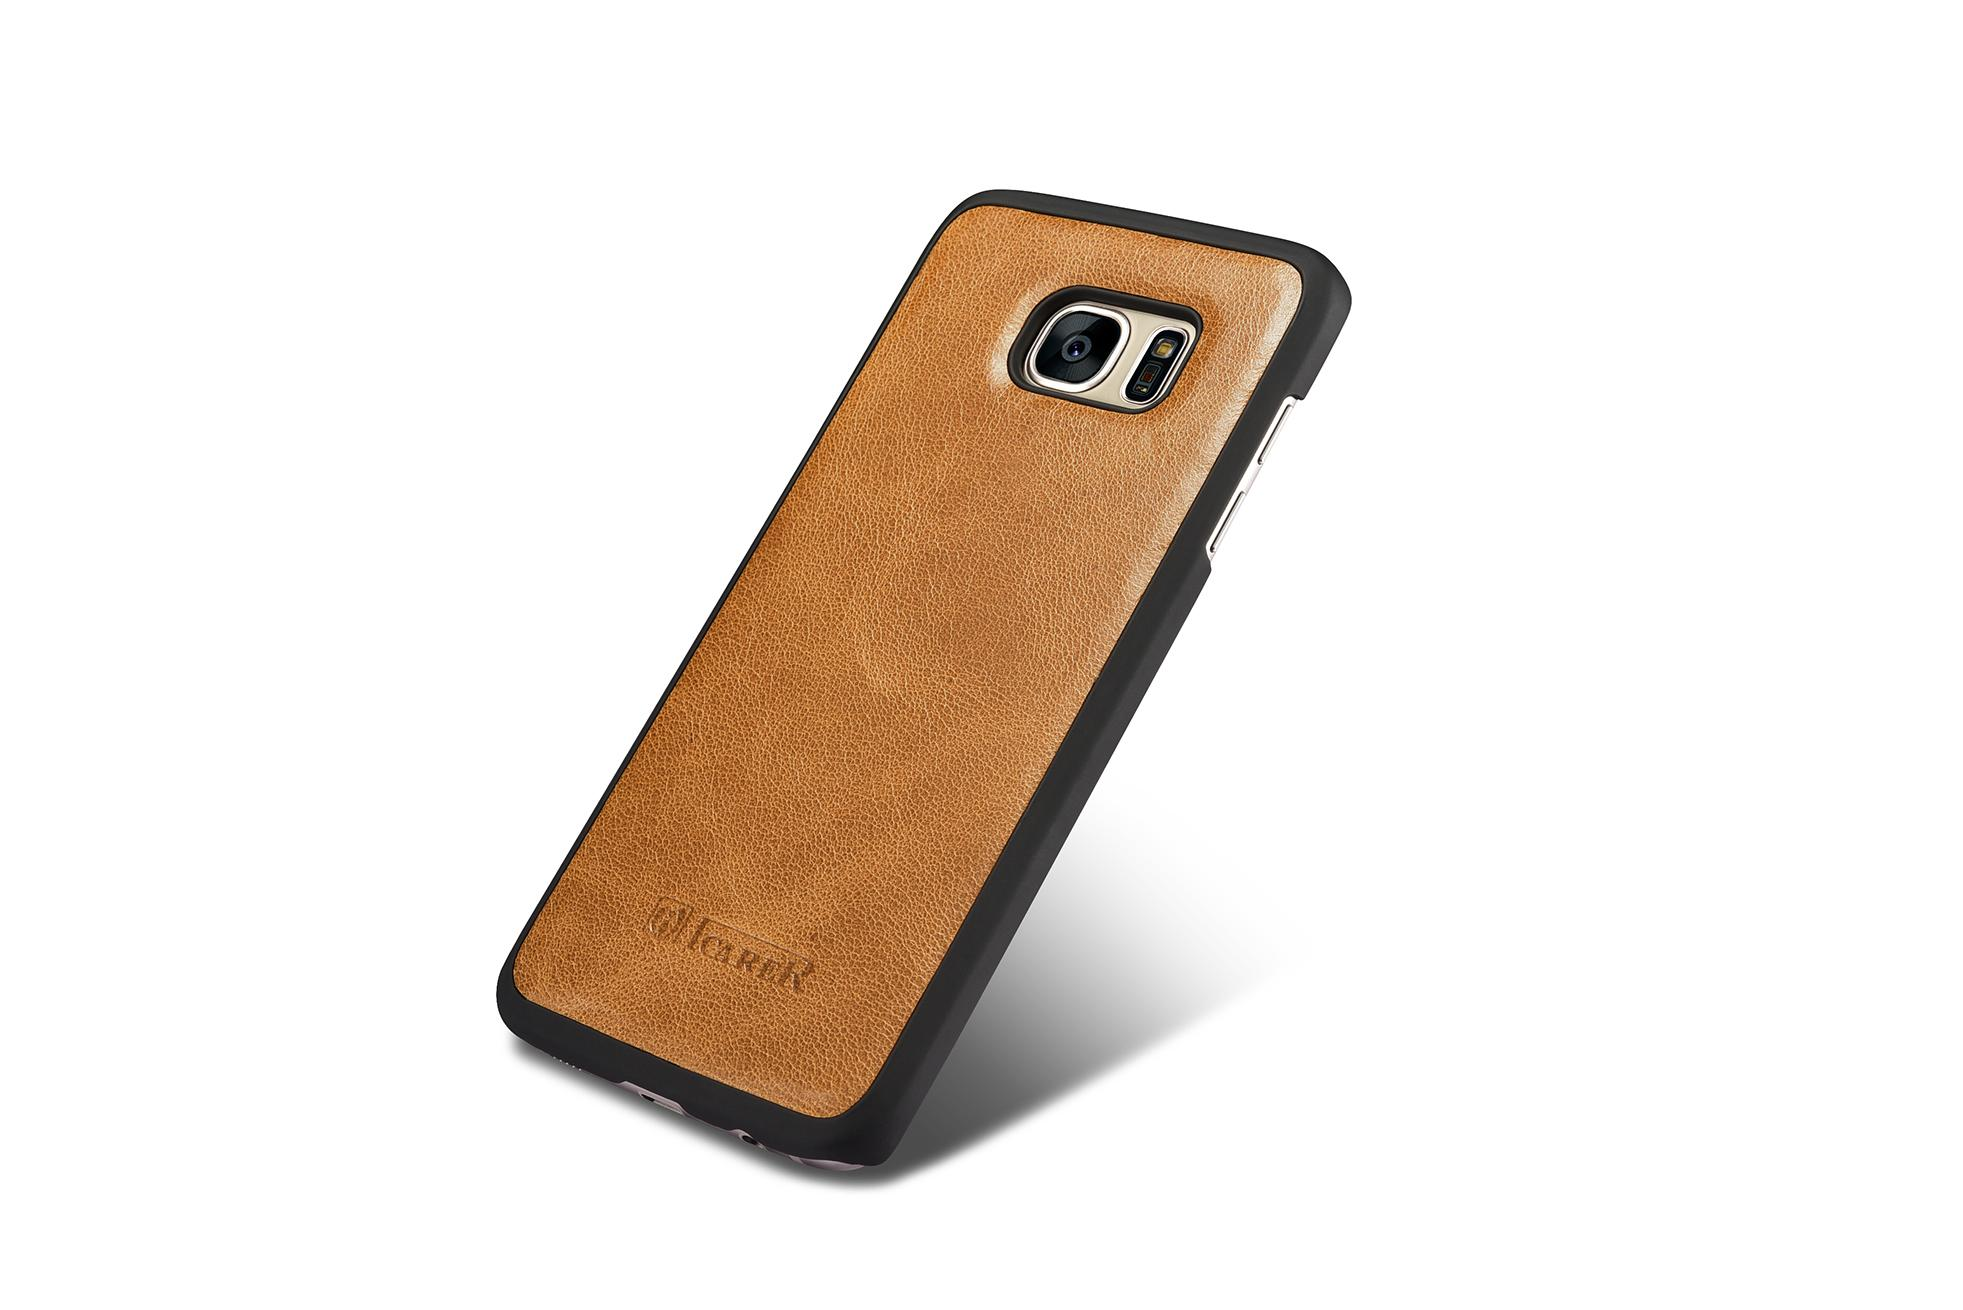 iCarer Samsung Galaxy S7 Edge Leather Detachable 2 in 1 Wallet Folio Case 9